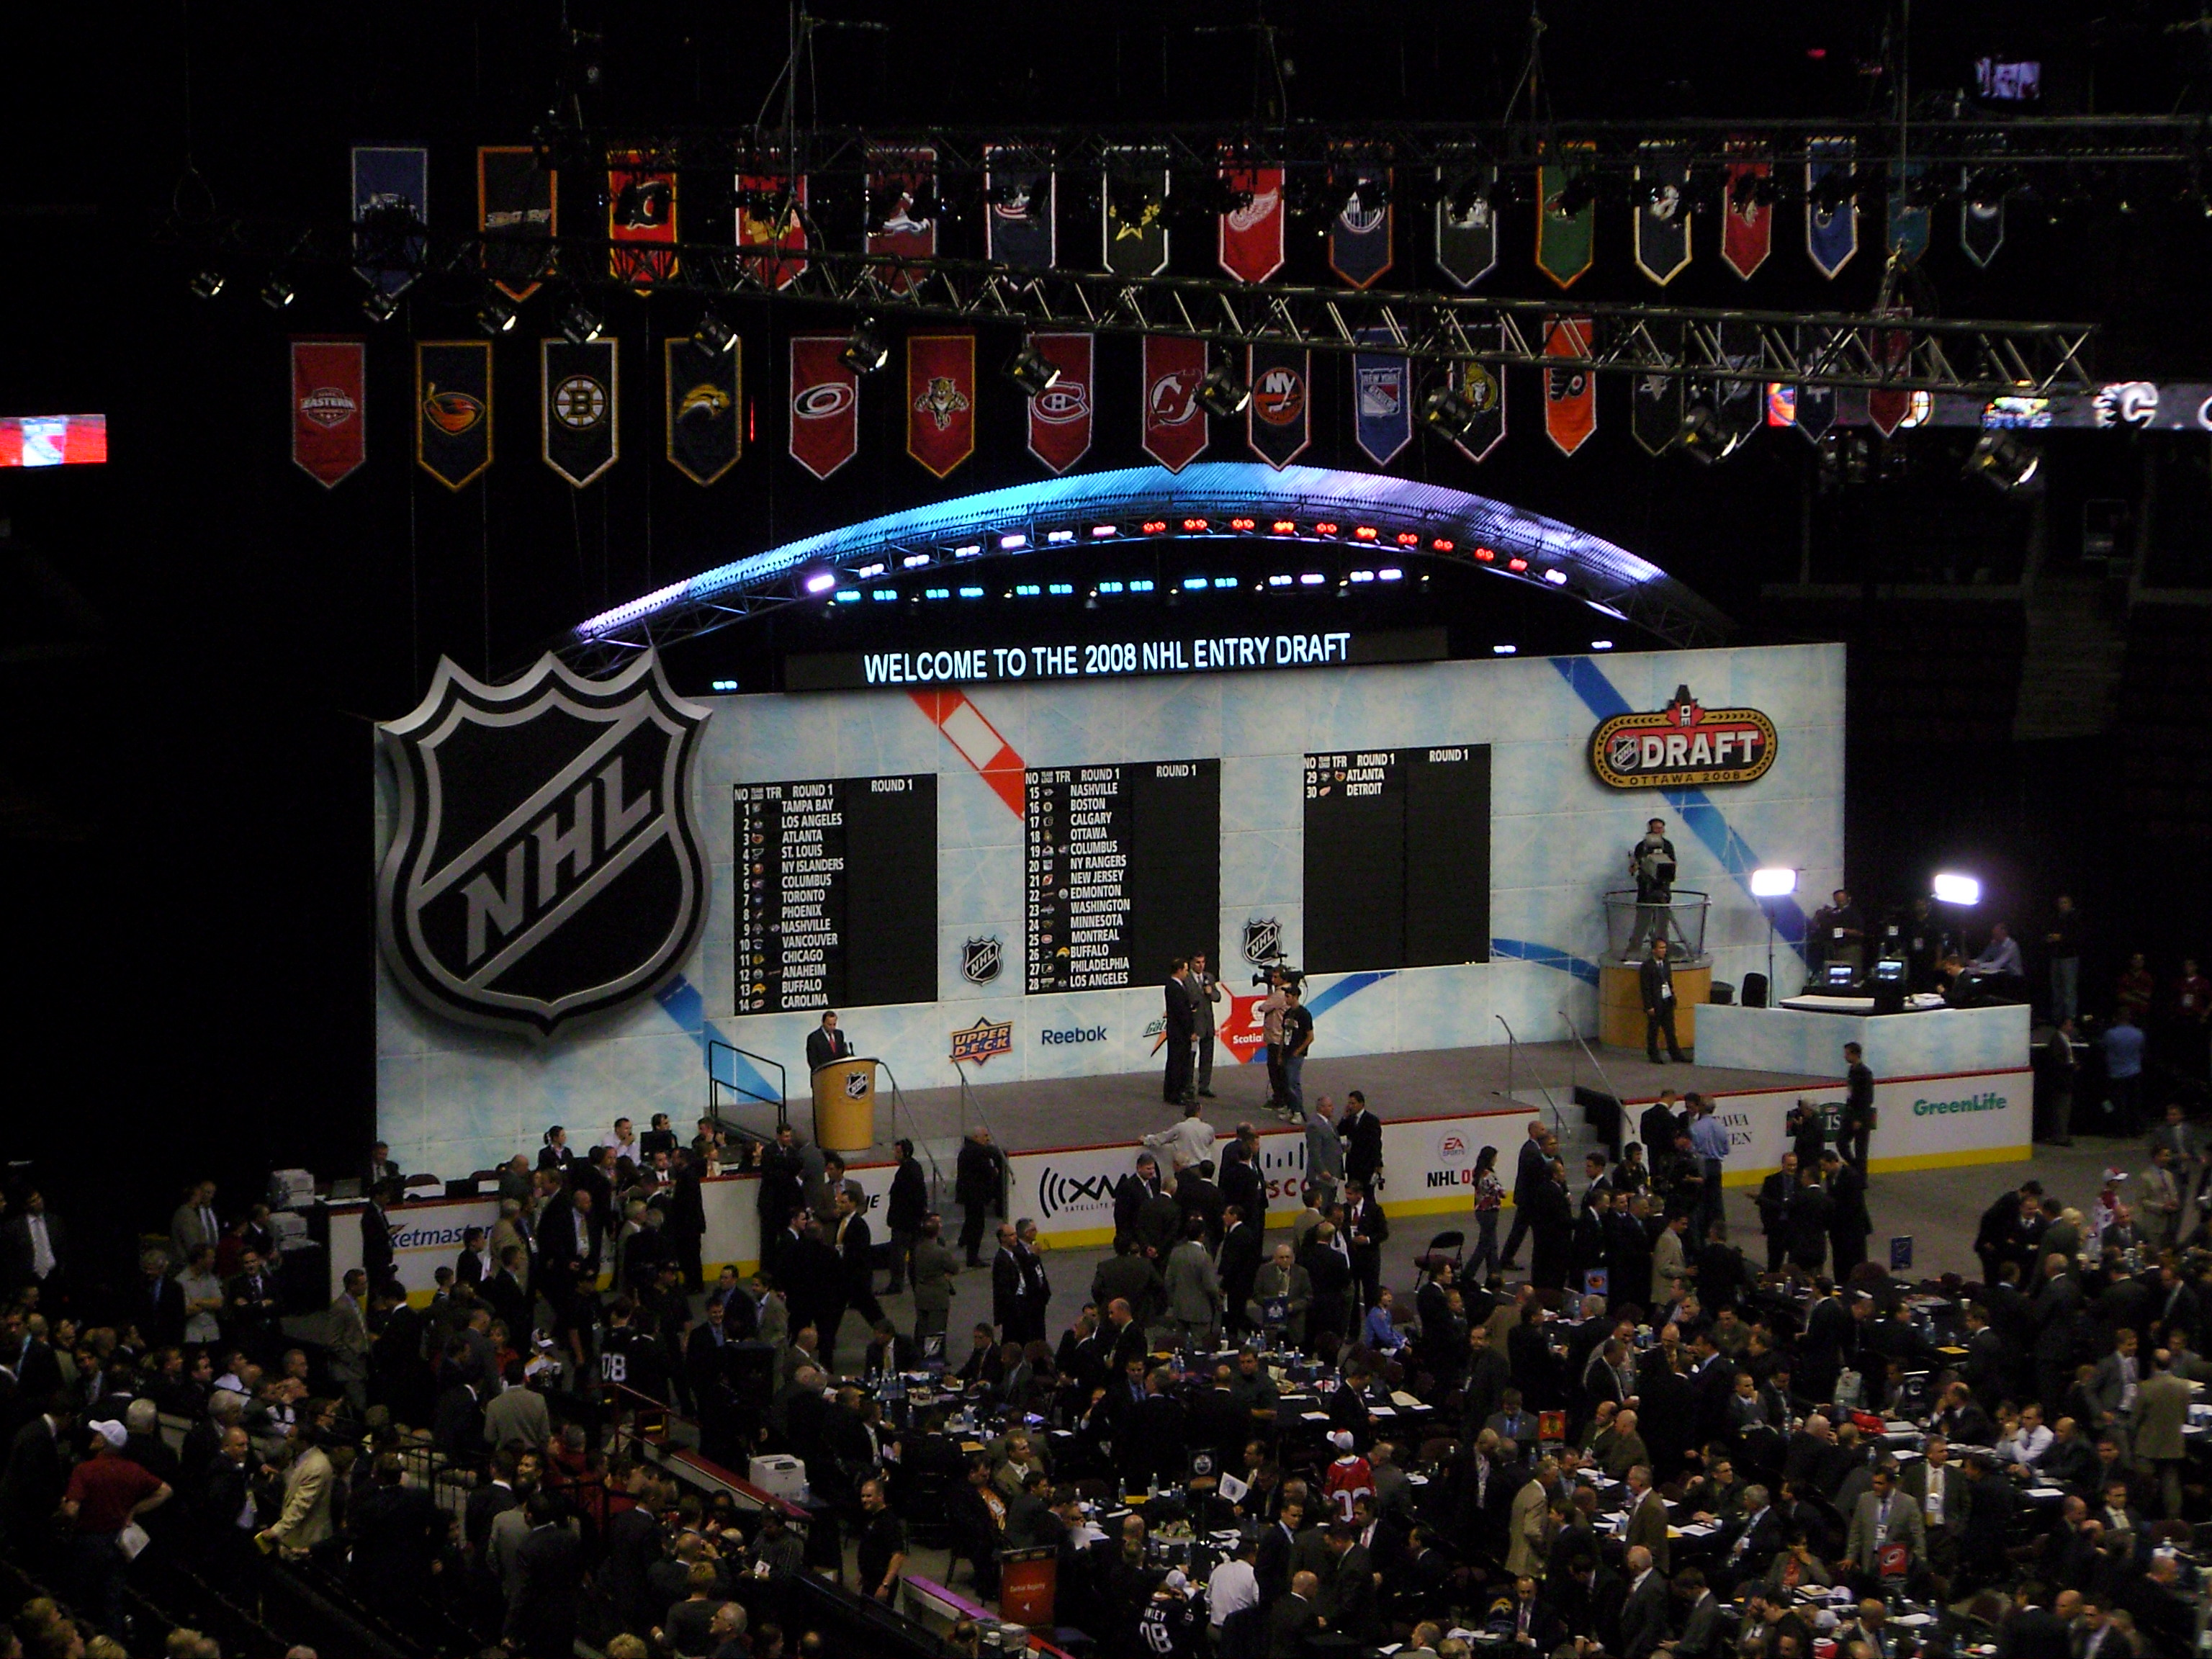 https://upload.wikimedia.org/wikipedia/commons/c/cd/2008_NHL_Entry_Draft_Stage.JPG